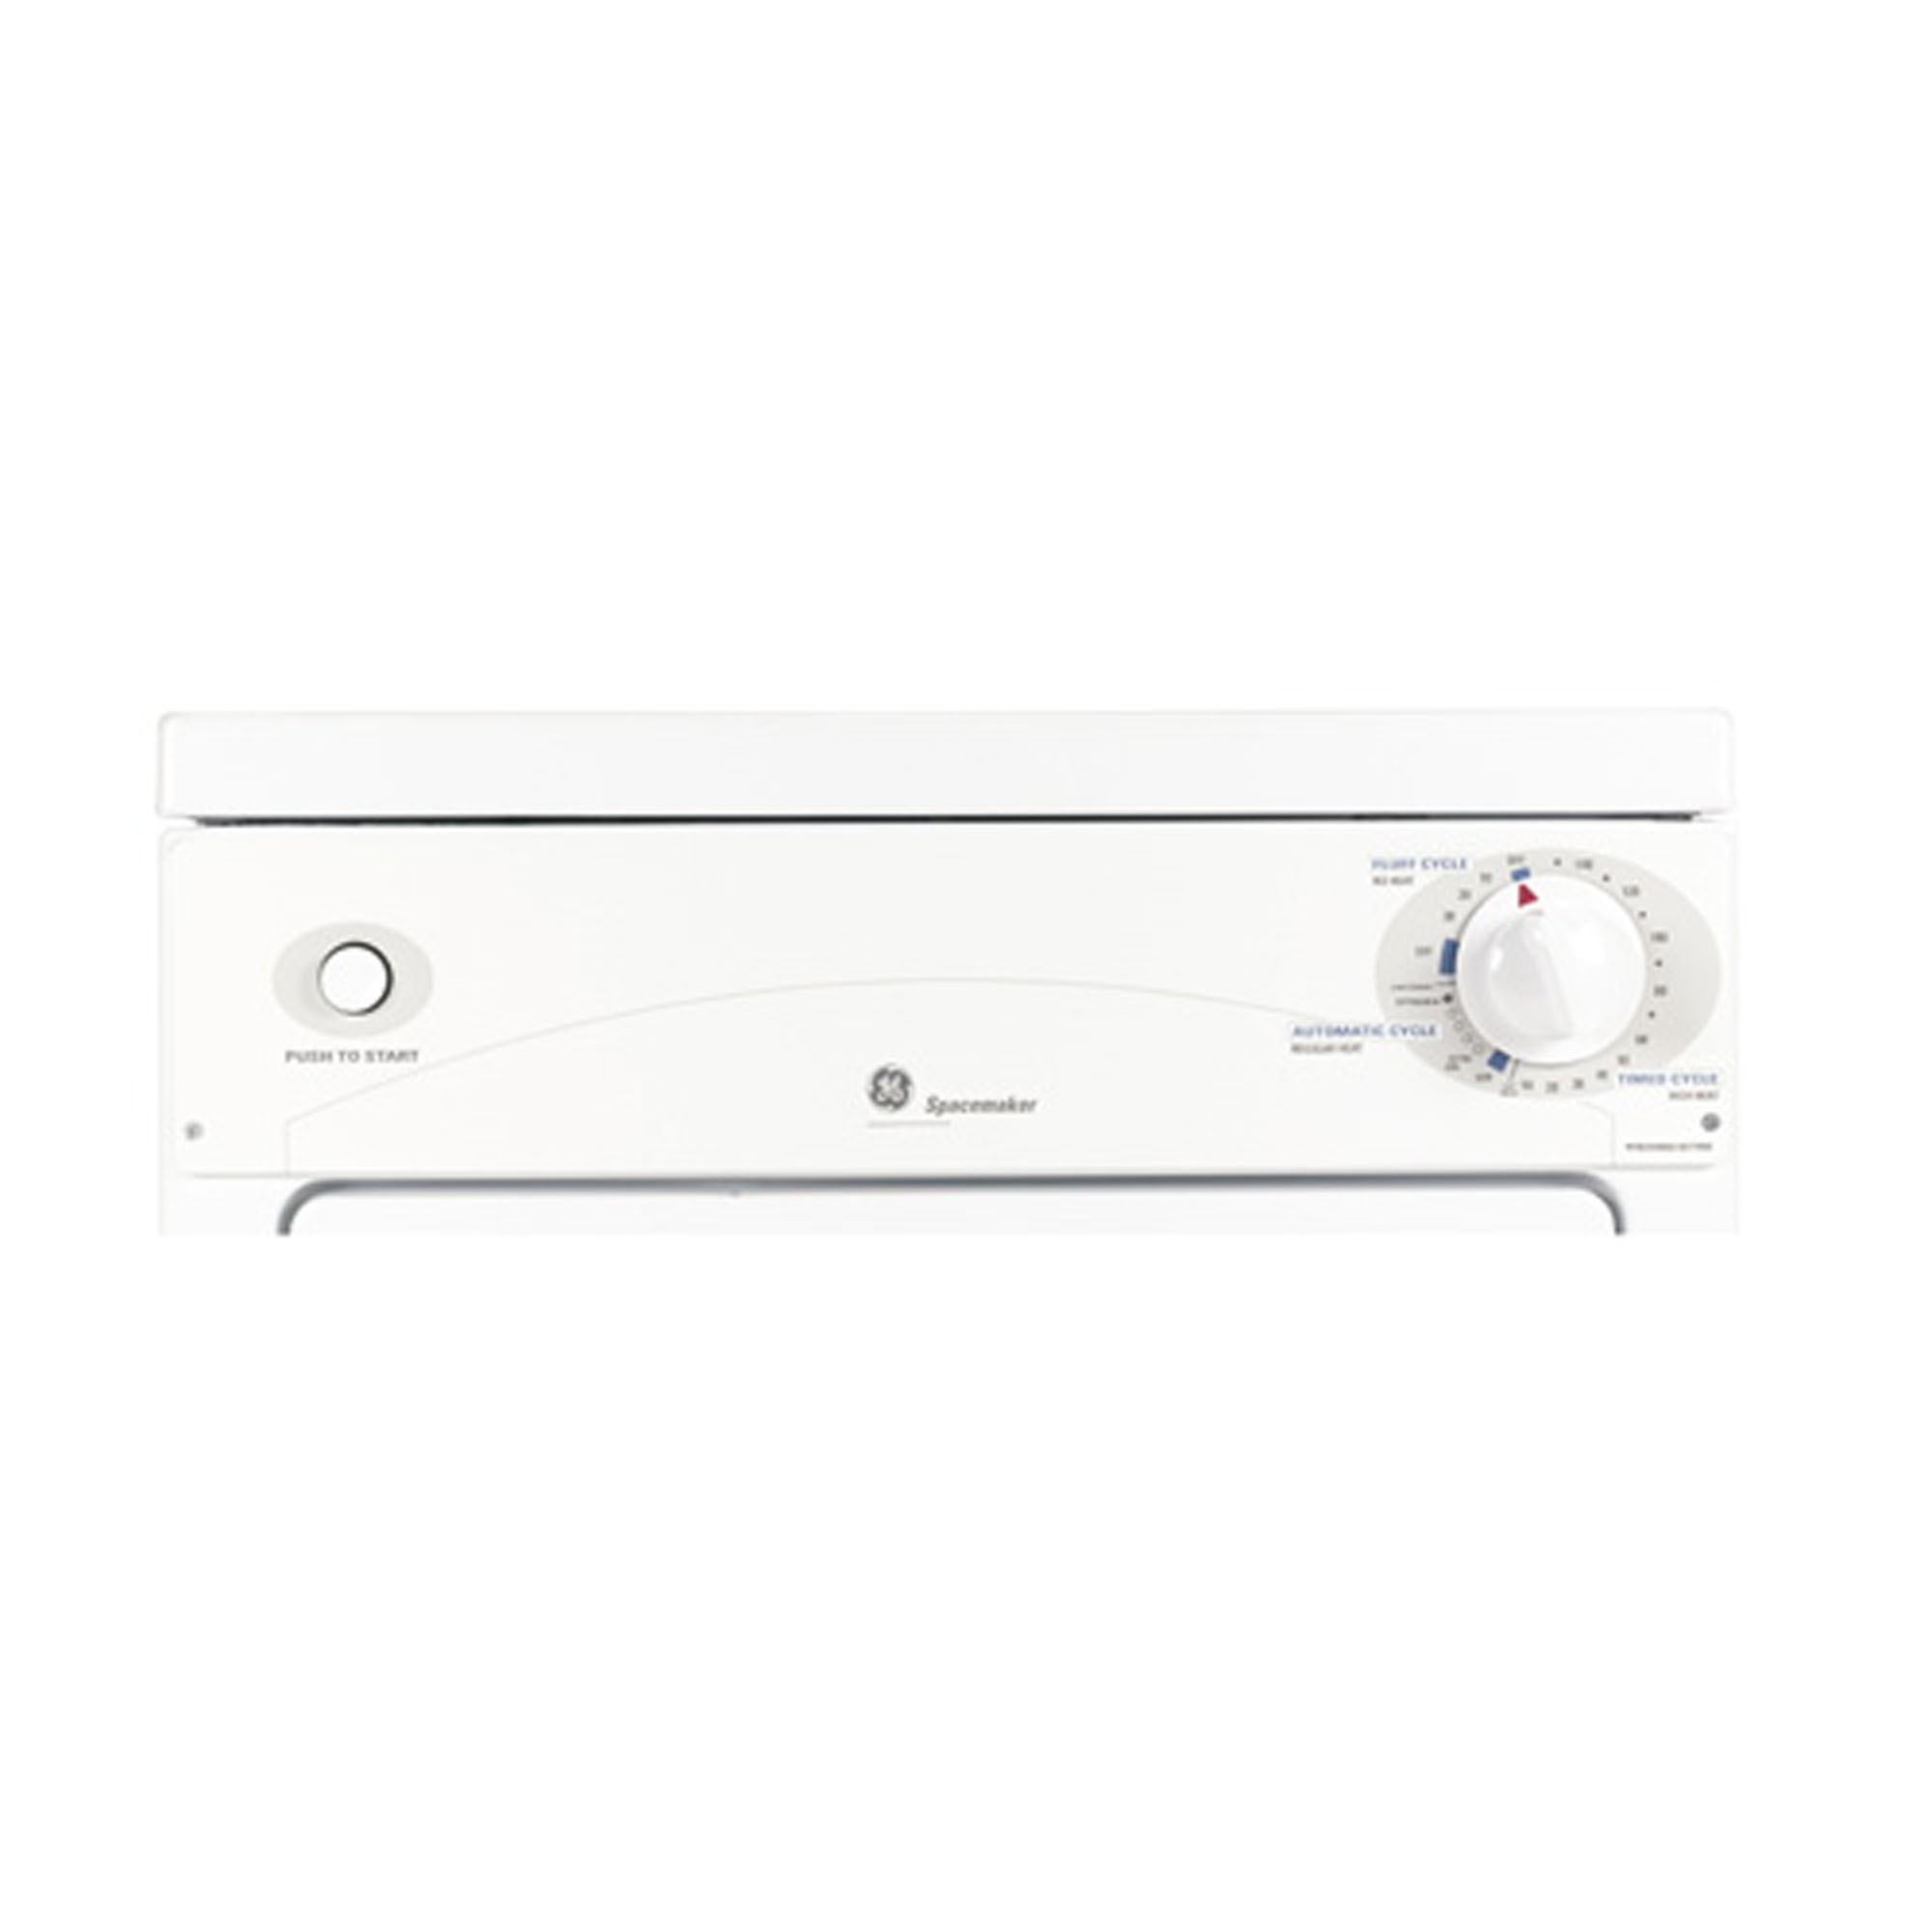 GE Appliances 3.6 cu. ft. White Electric Dryer